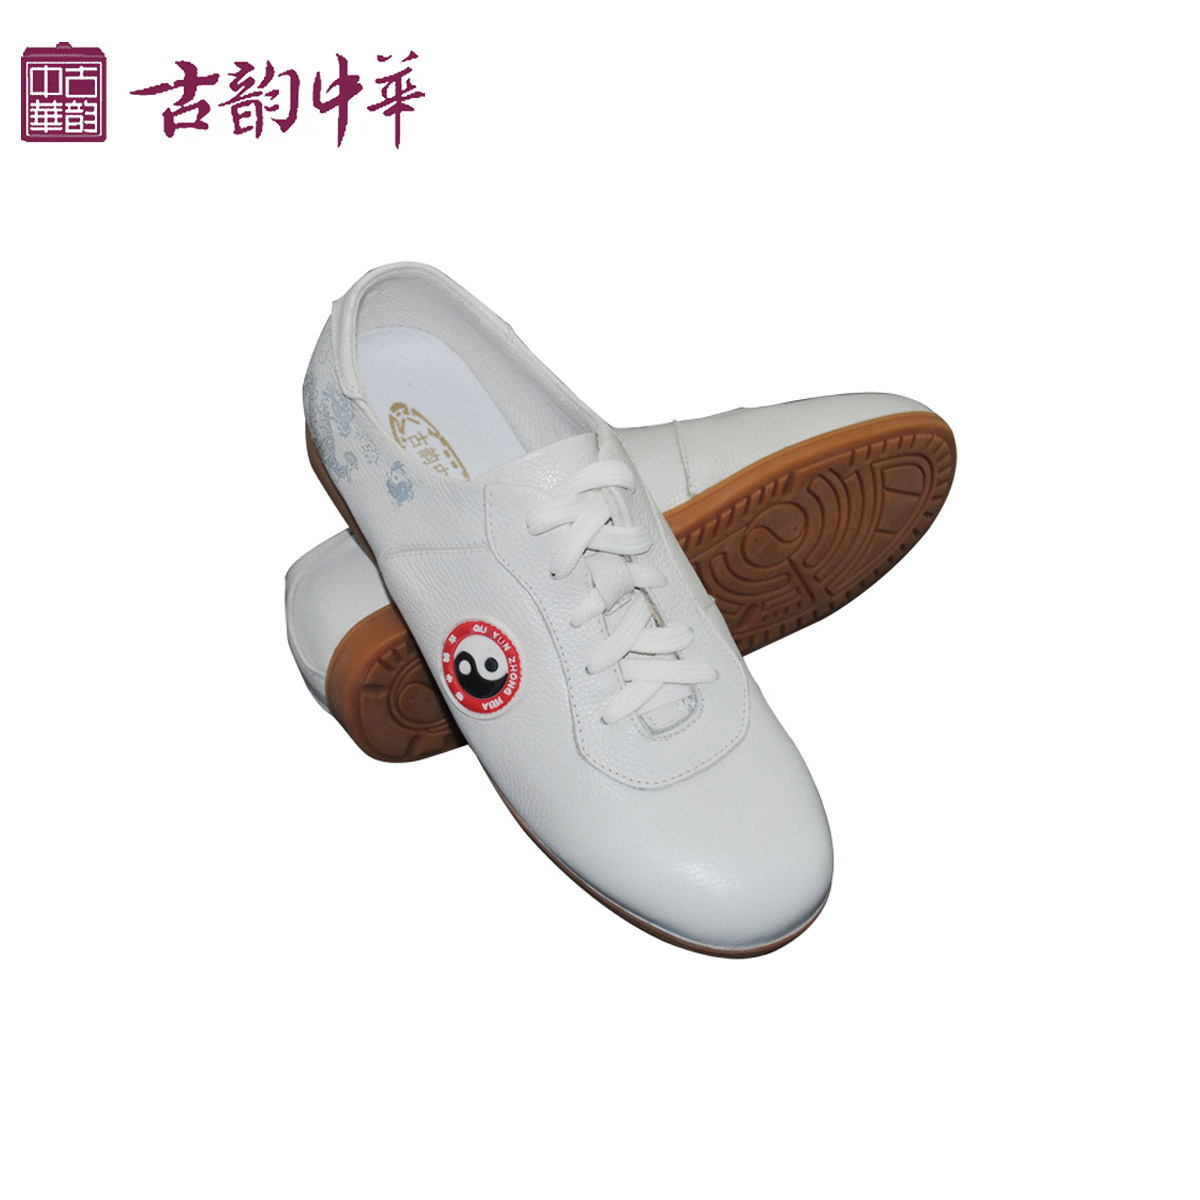 offer spring and soft leather first layer of auspicious clouds Dichotomanthes end Taiji Kungfu shoes Wushu shoes shoes<br><br>Aliexpress